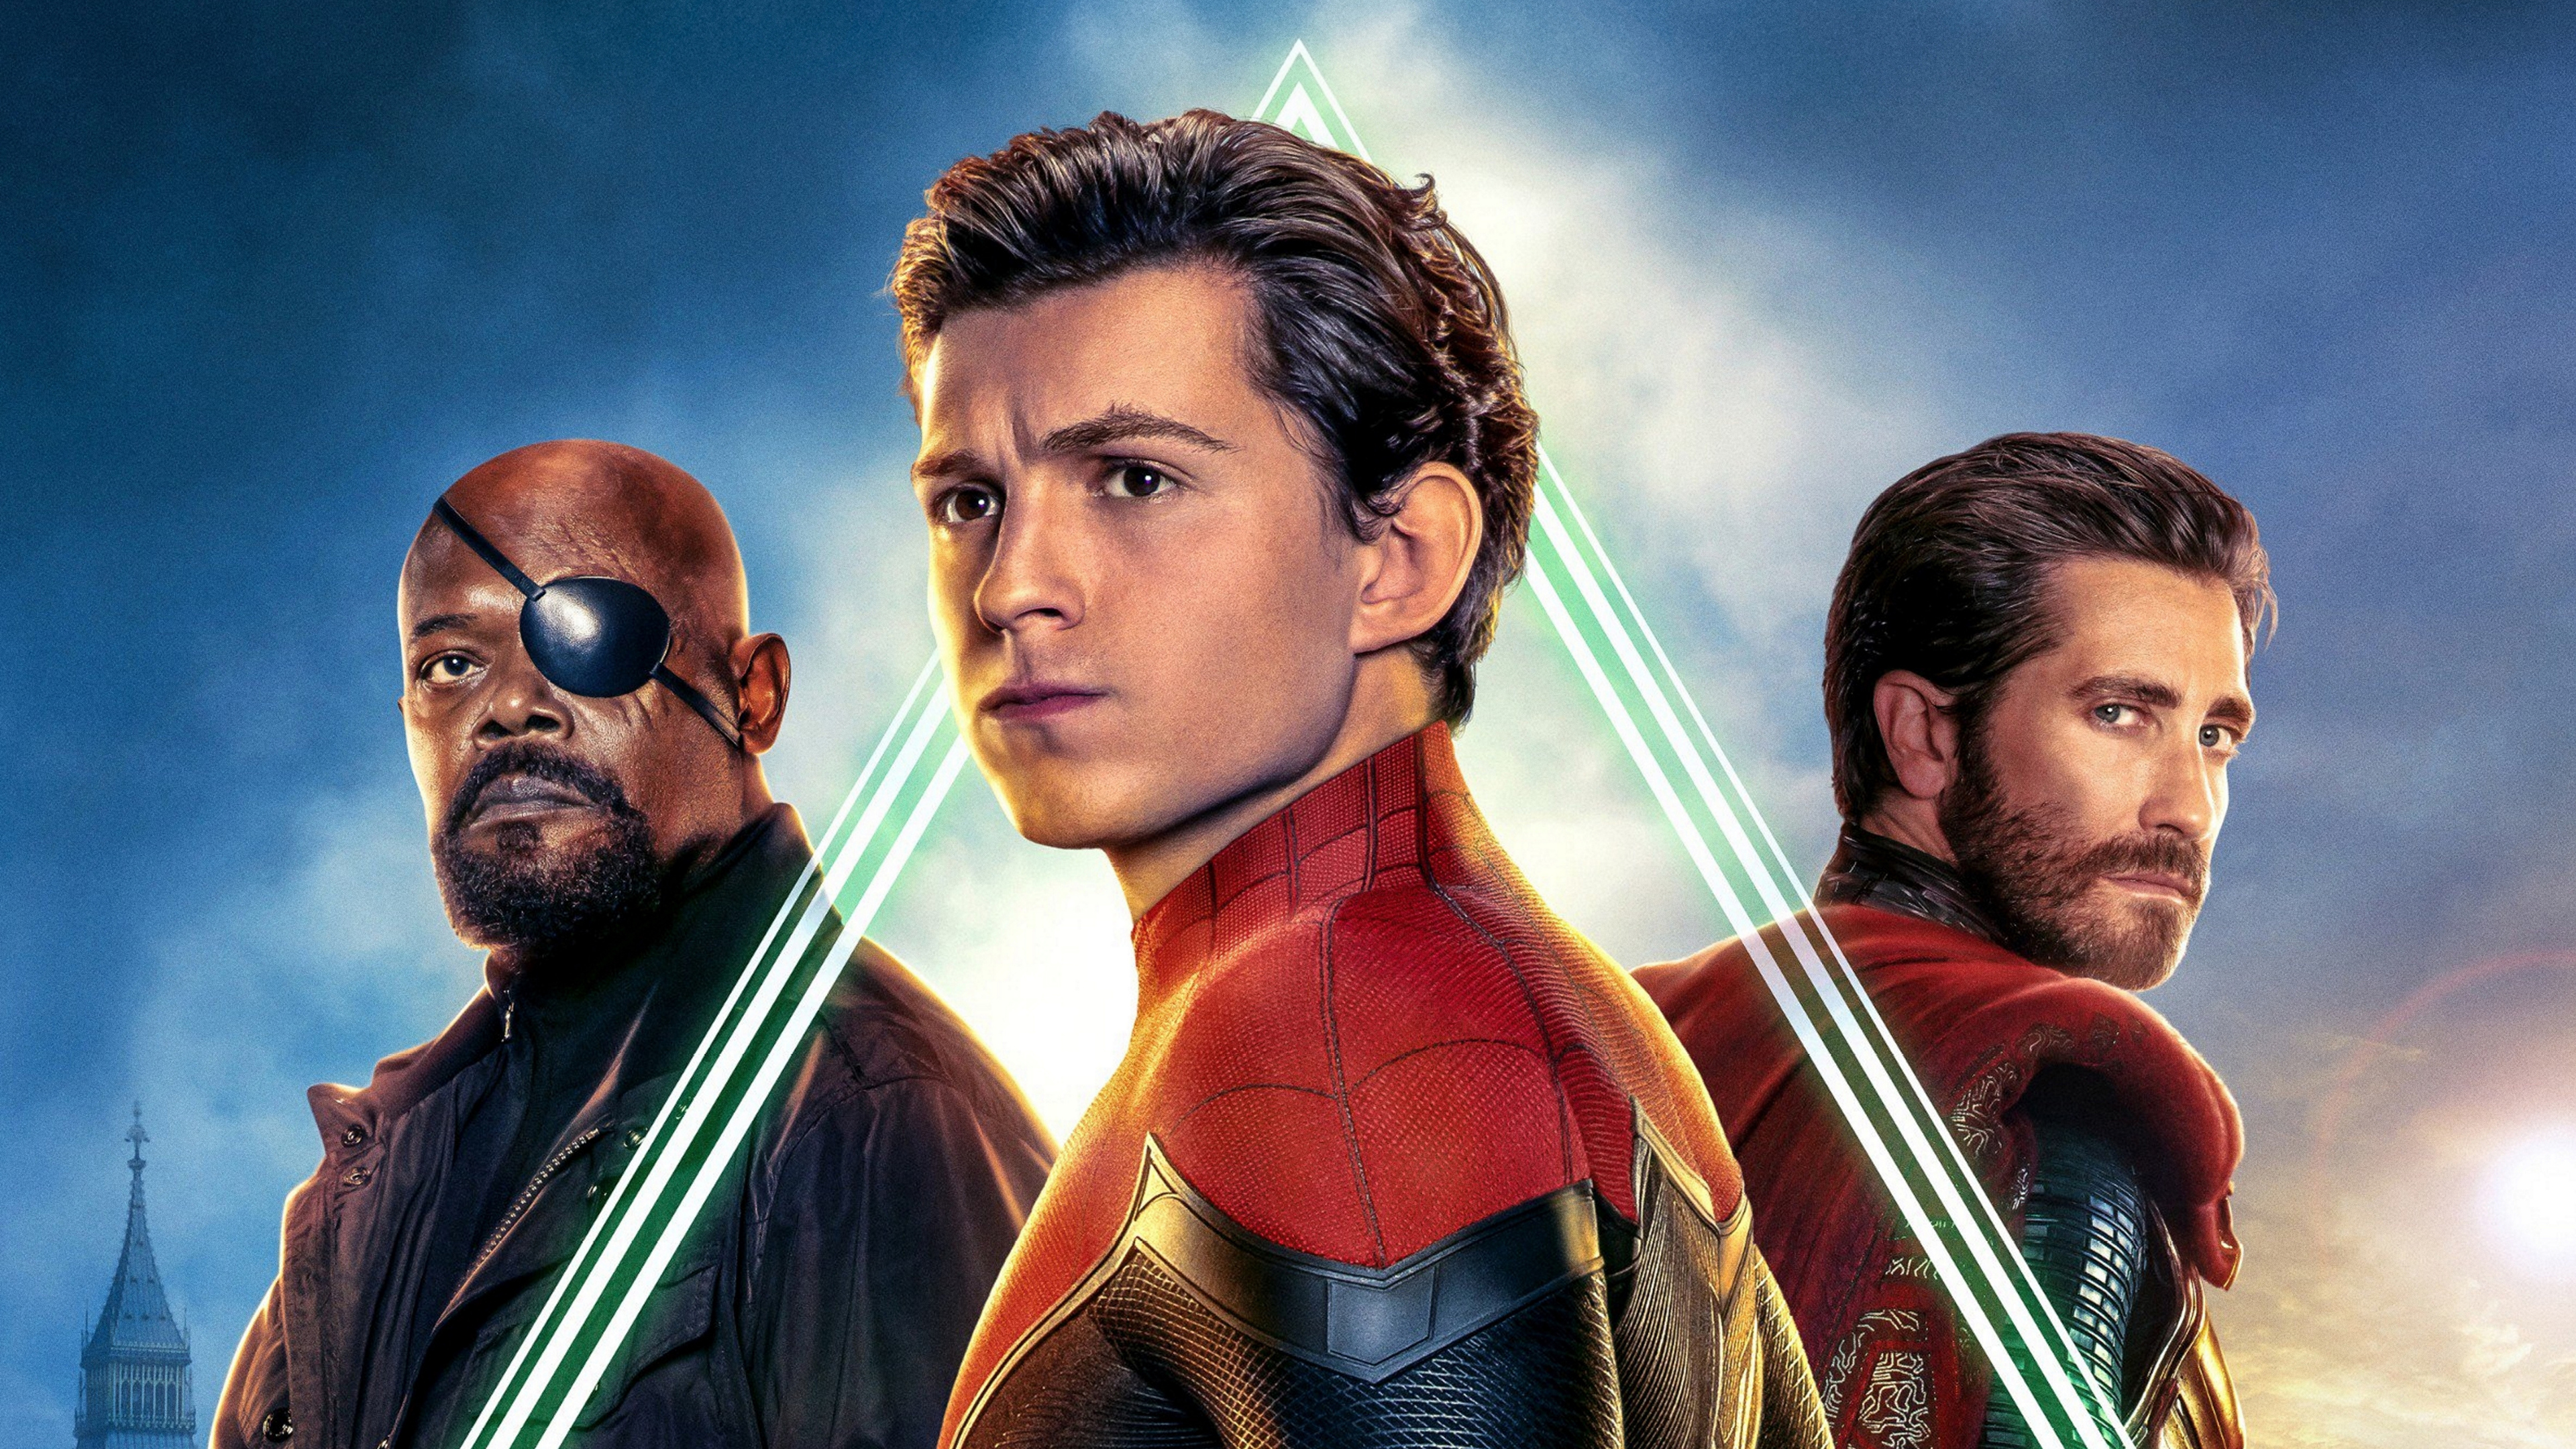 spiderman far from home movie 4k 2019 1560535175 - Spiderman Far From Home Movie 4k 2019 - superheroes wallpapers, spiderman wallpapers, spiderman far from home wallpapers, mysterio wallpapers, movies wallpapers, hd-wallpapers, 4k-wallpapers, 2019 movies wallpapers